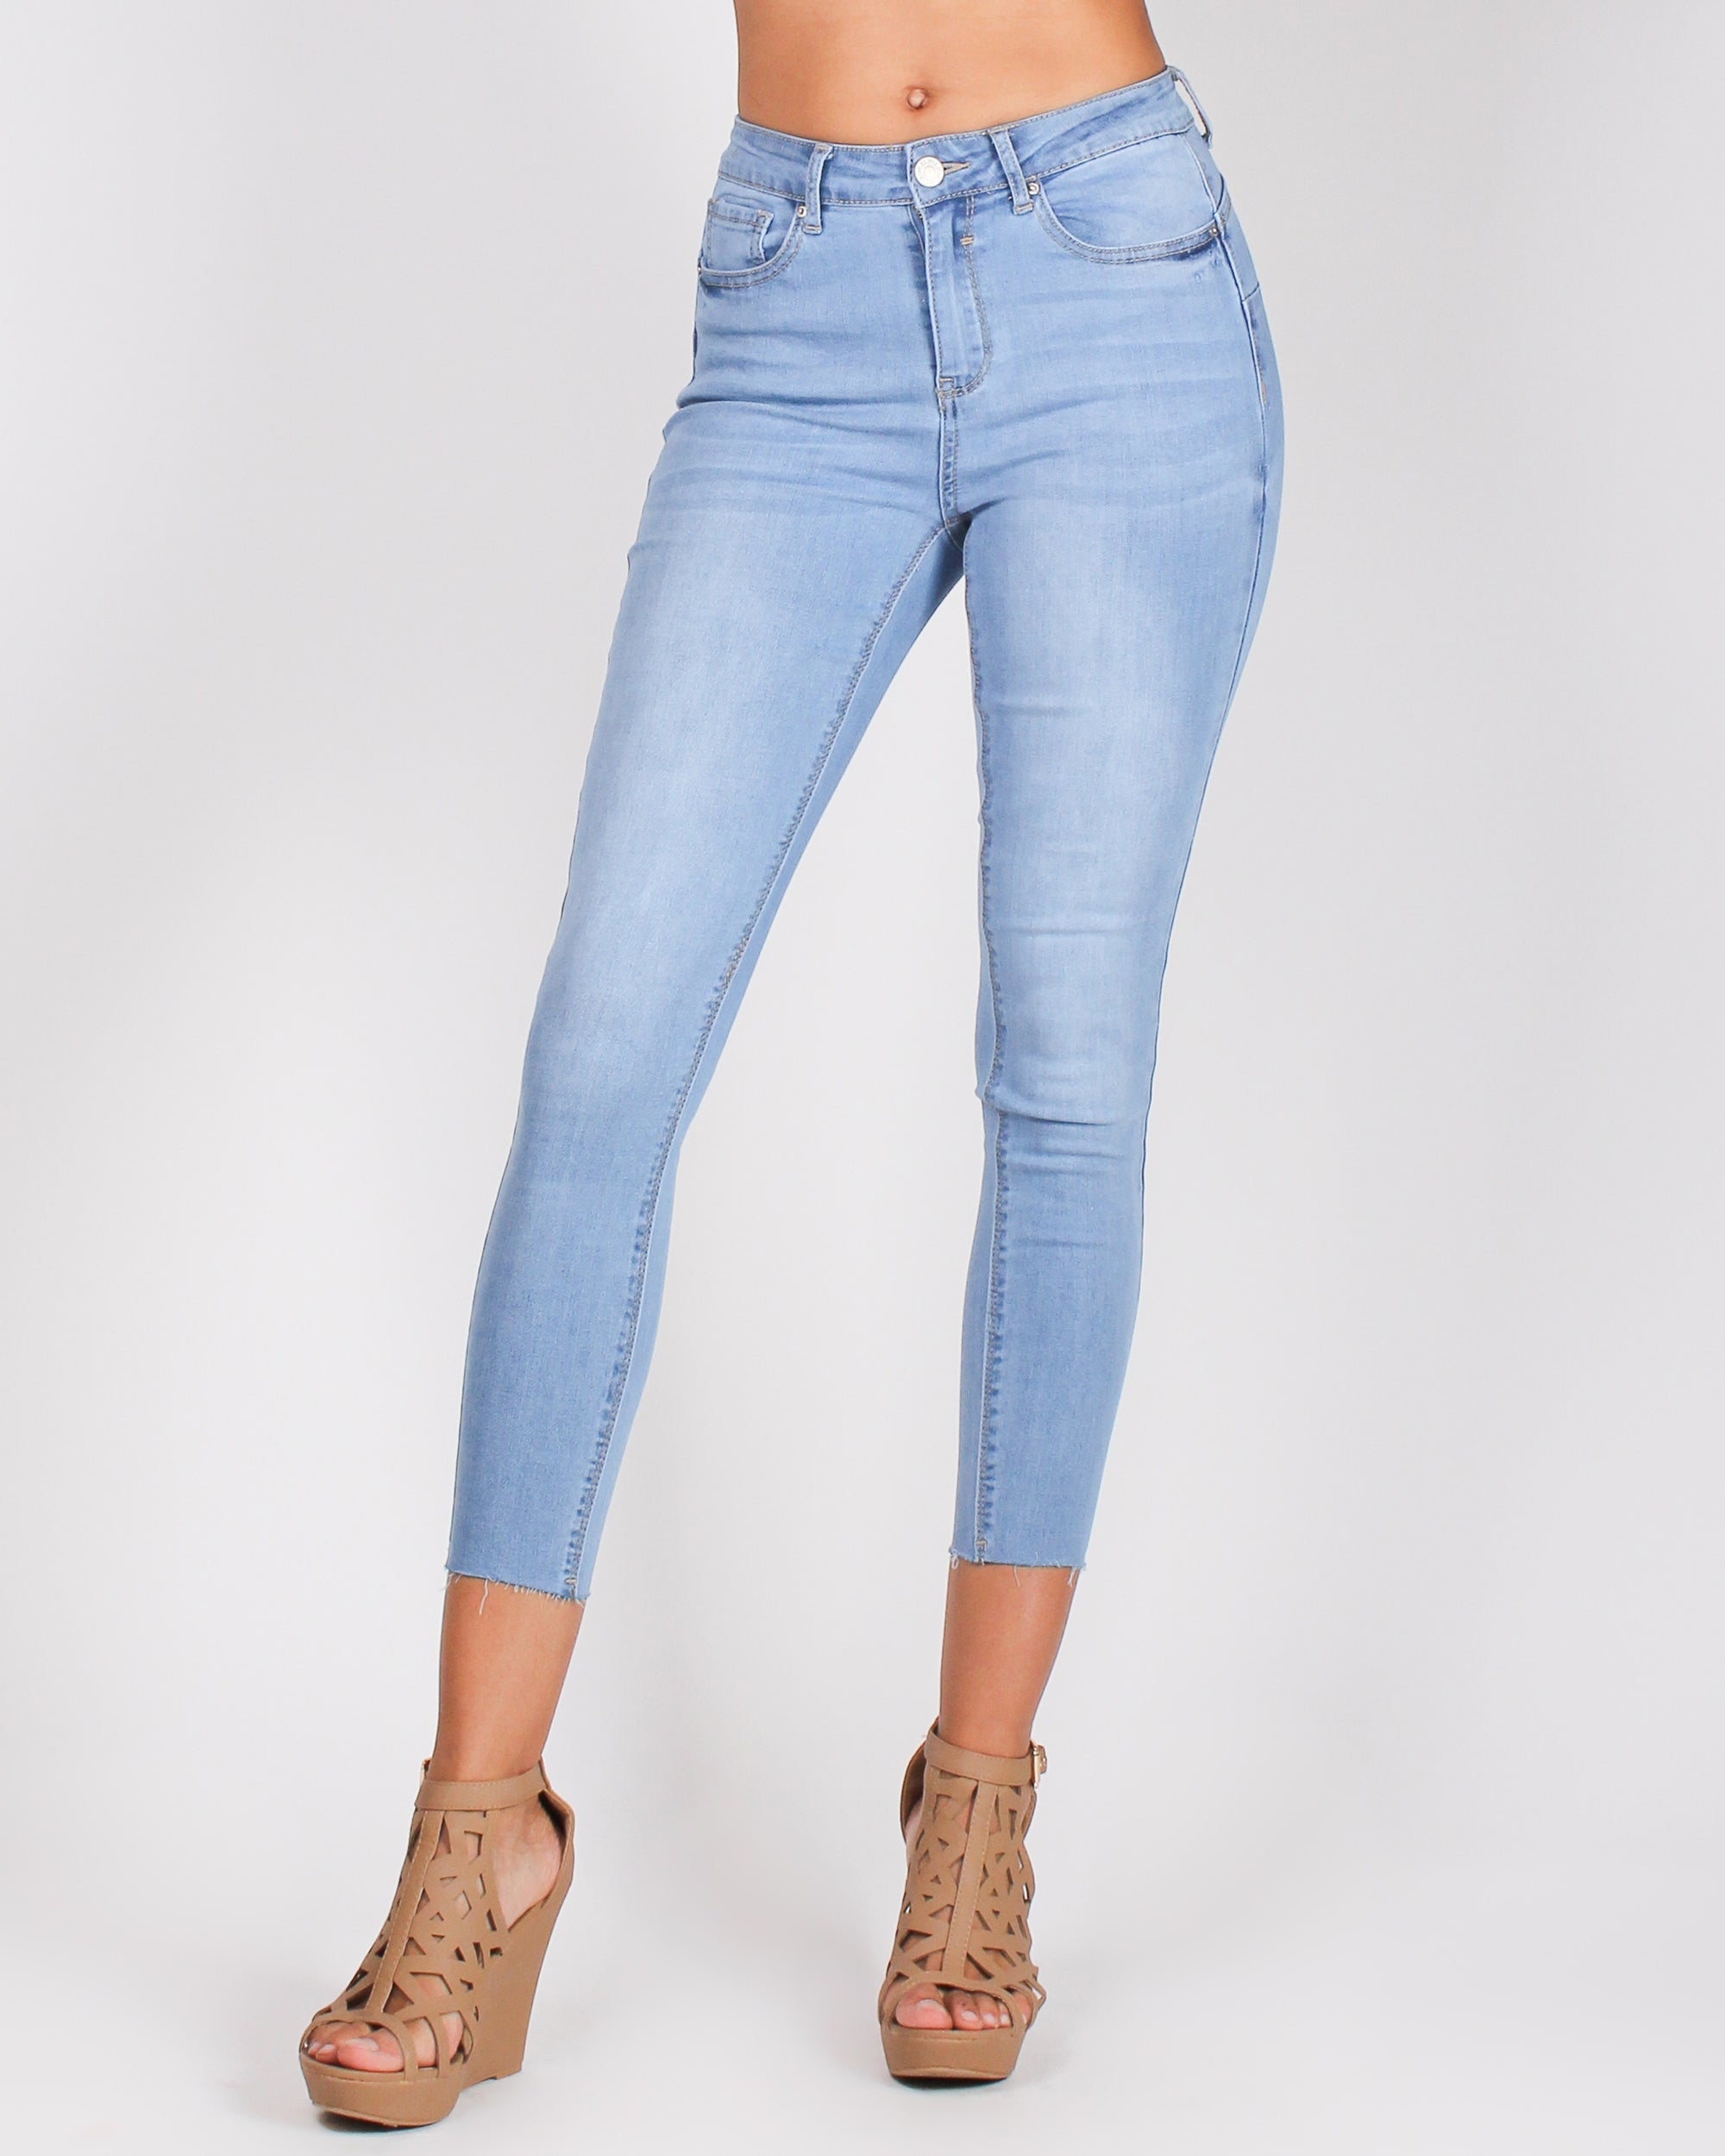 Fashion Q Shop Q Cutie with a Bootie Skinny Jeans (Light) 90158